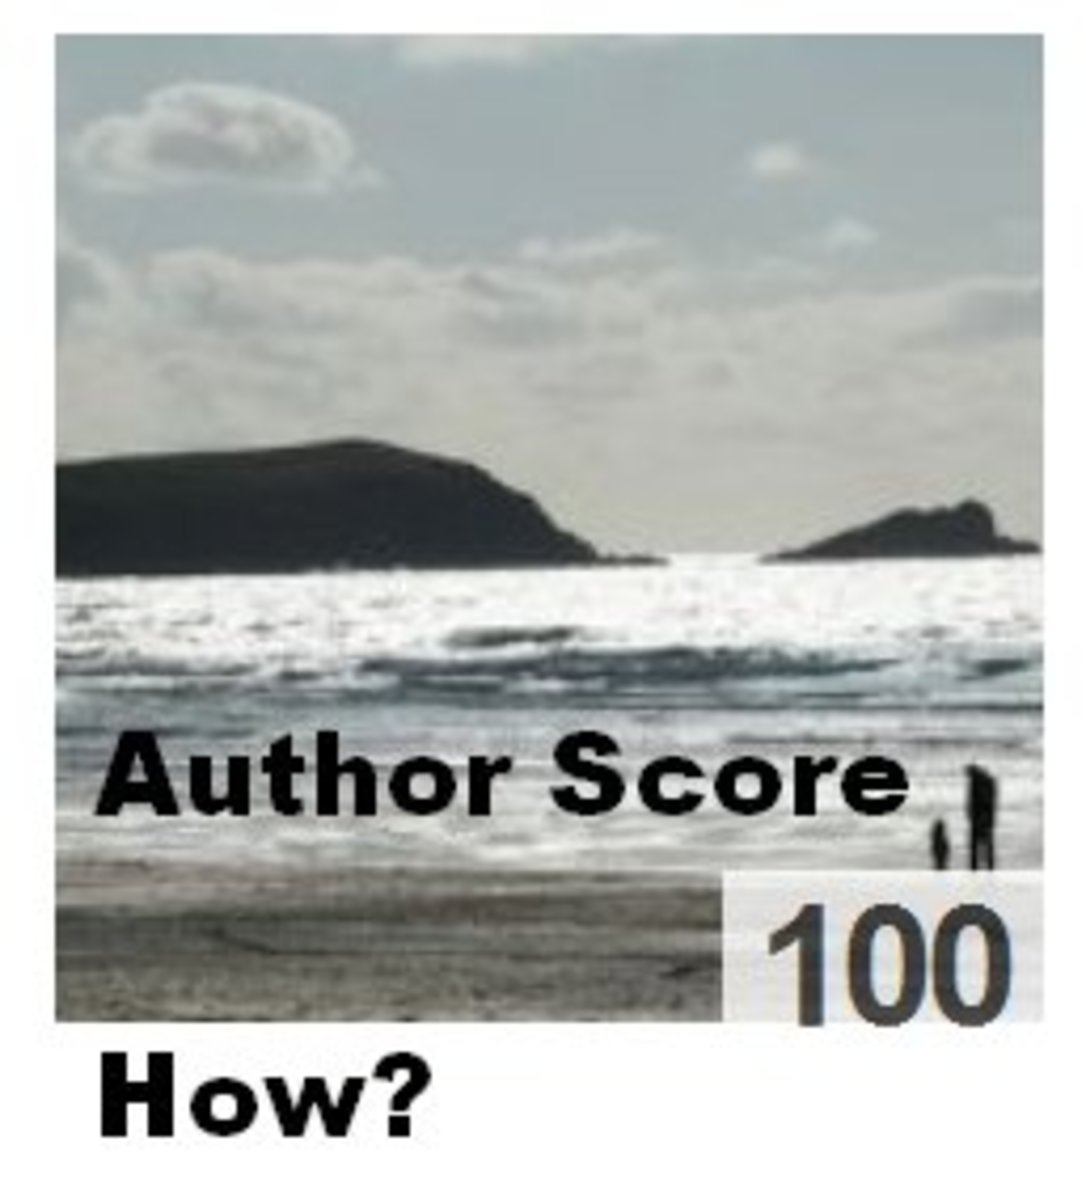 How to Increase Your Hub Author Score to 100 on Hubpages: